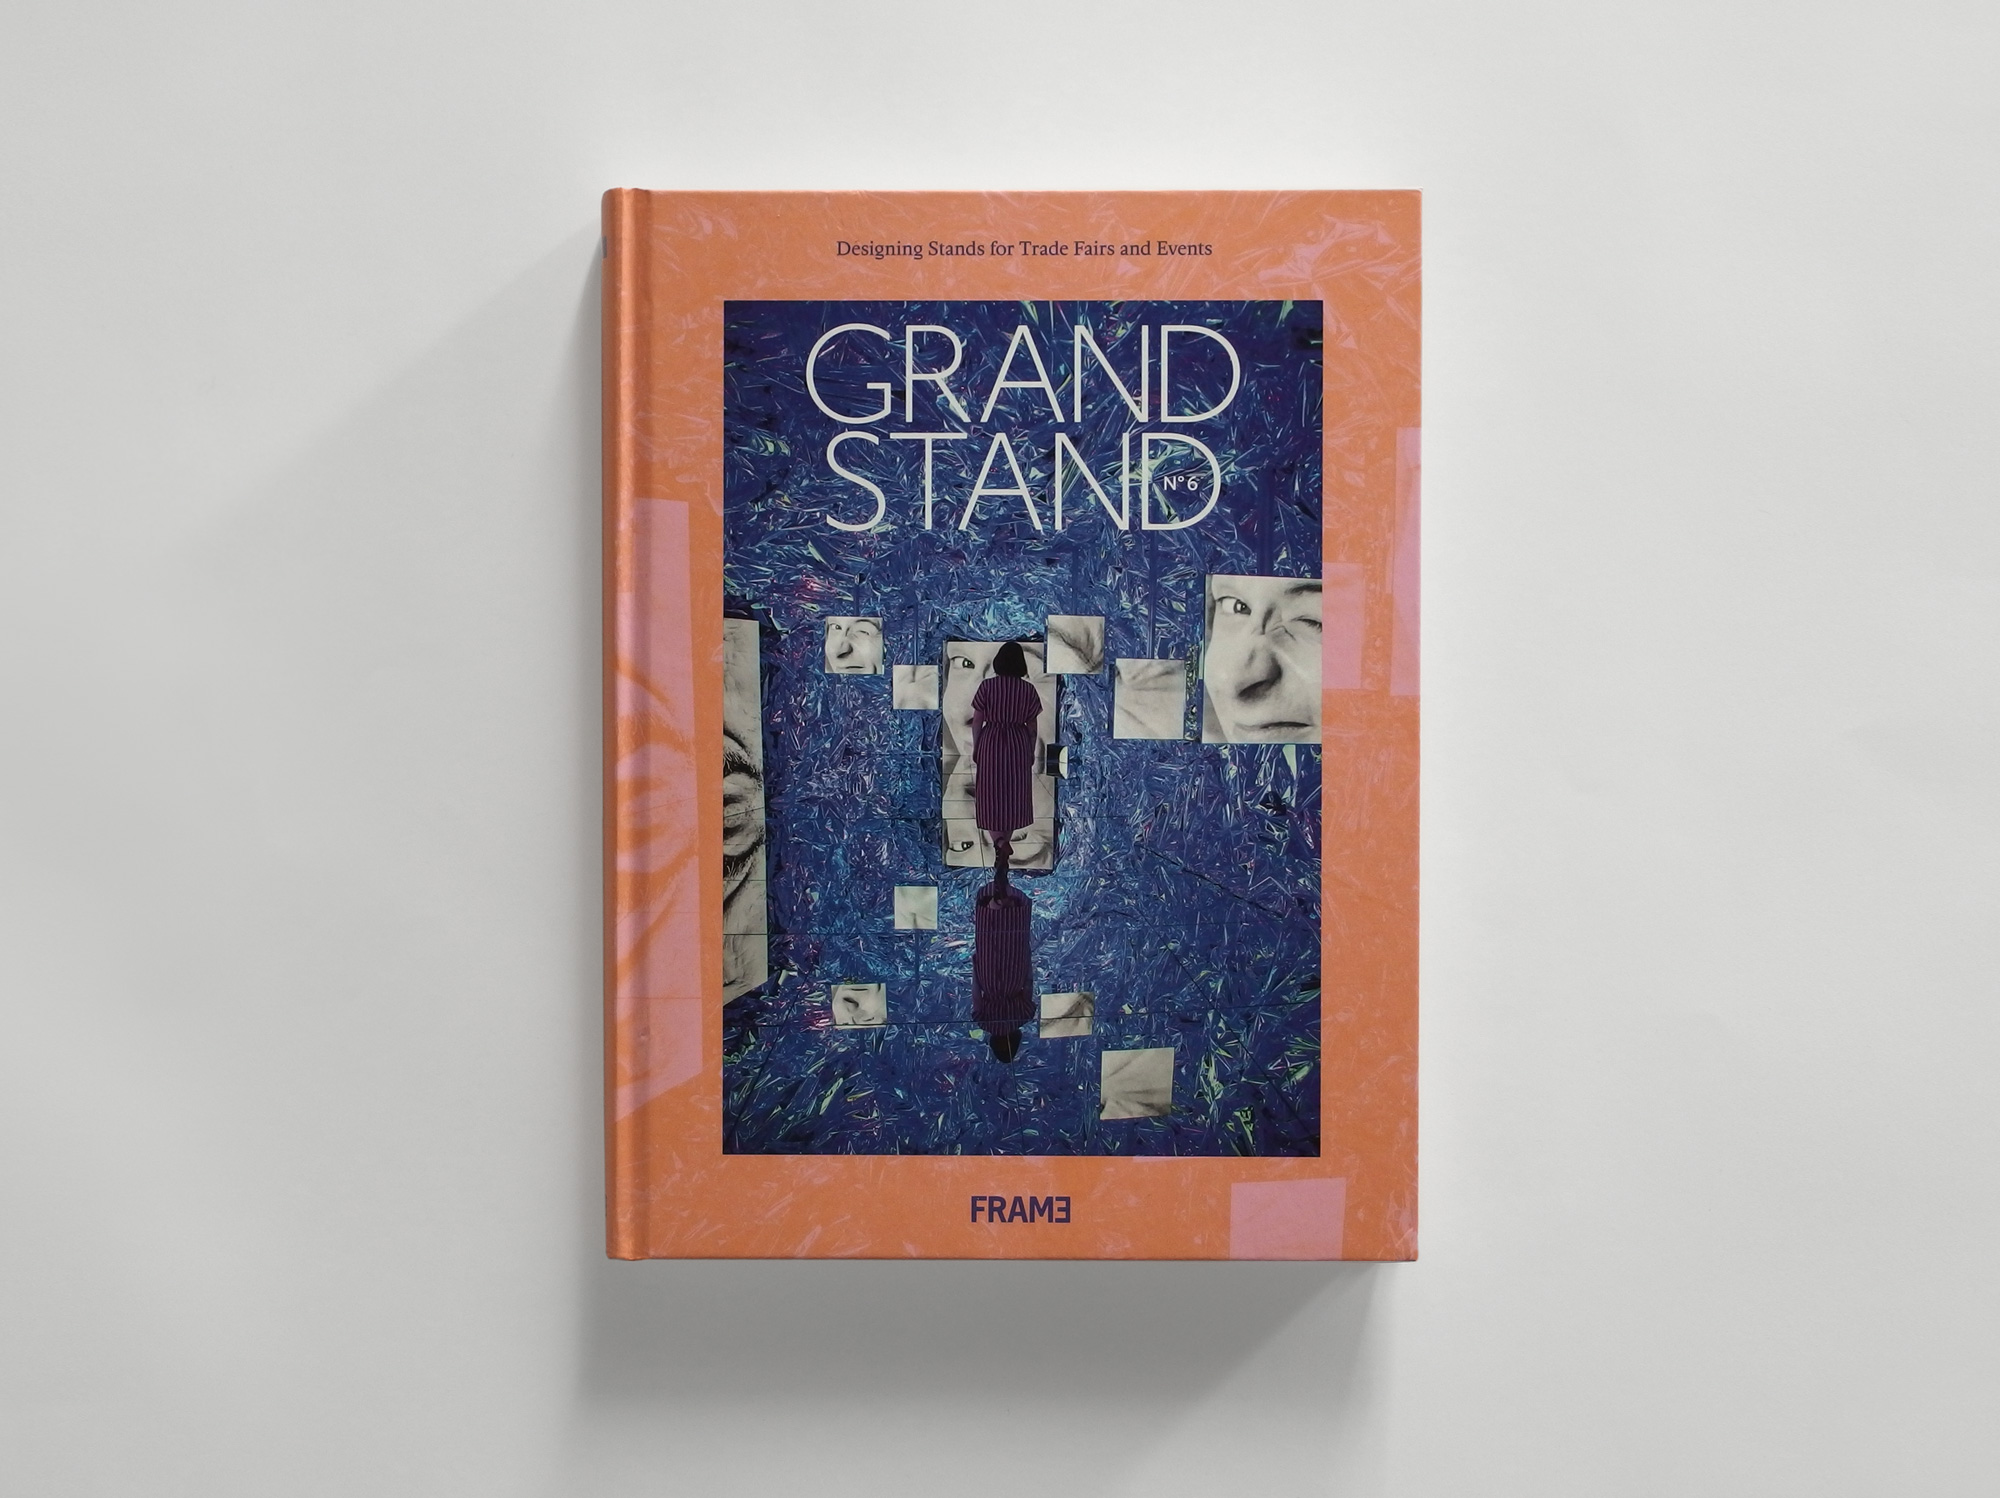 GRAND STAND